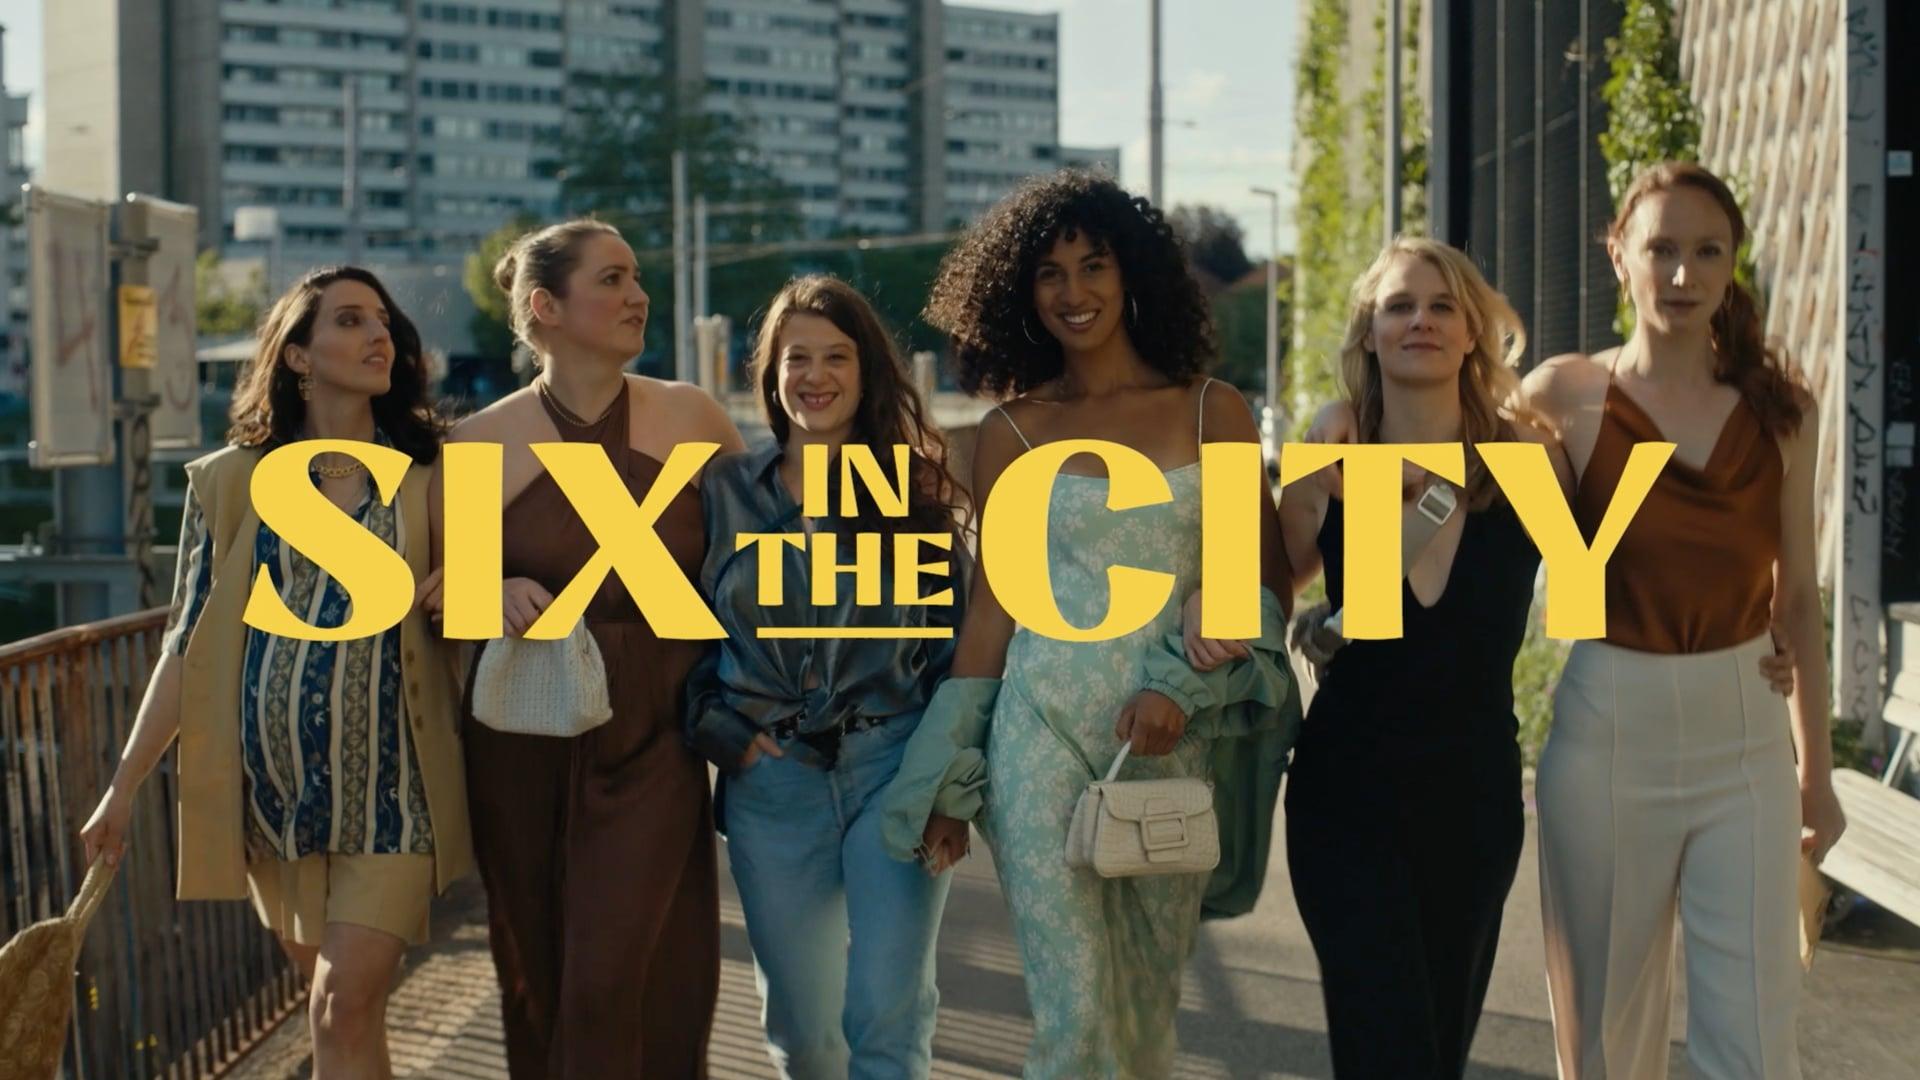 Six in the City - Swiss Tourism Campaign